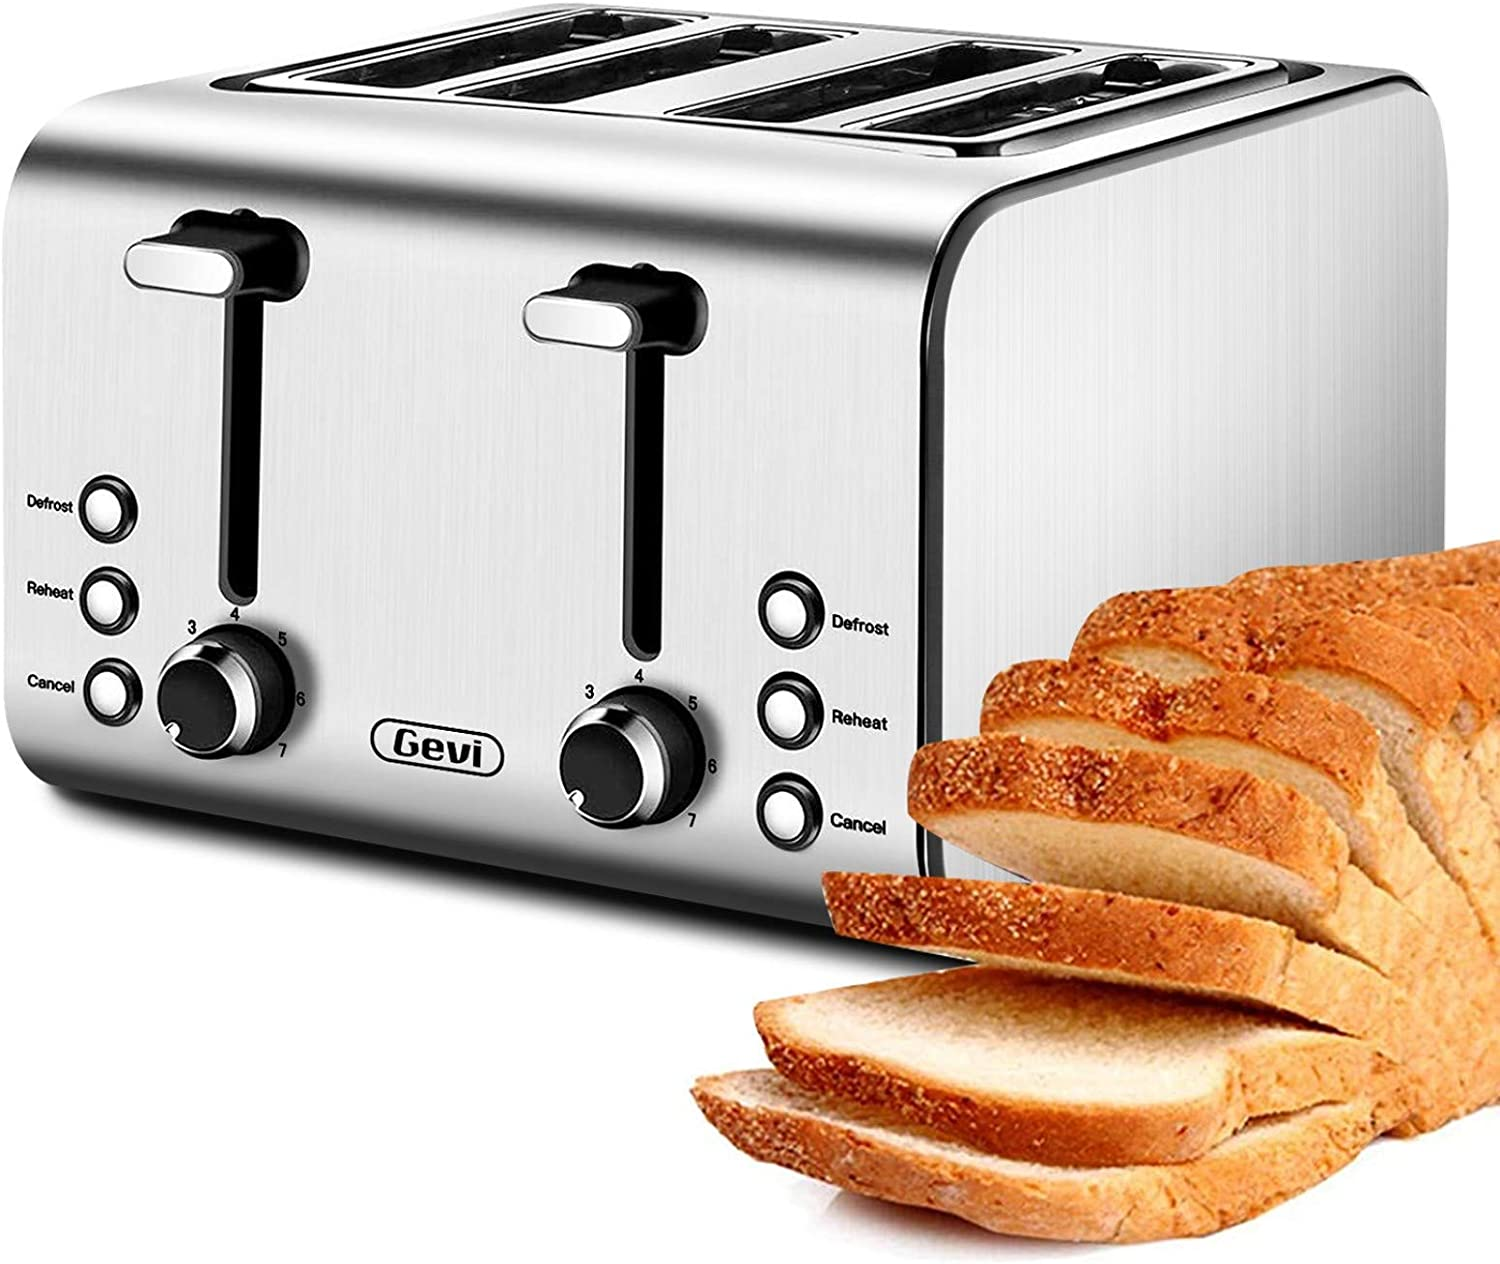 Toaster 4 Slice, Stainless Steel Extra-Wide Slot Toaster with Dual Control Panels of Bagel/Defrost/Cancel Function, 6 Toasting Bread Shade Settings, Removable Crumb Trays, Auto Pop-Up, 1500W (Ceramic)